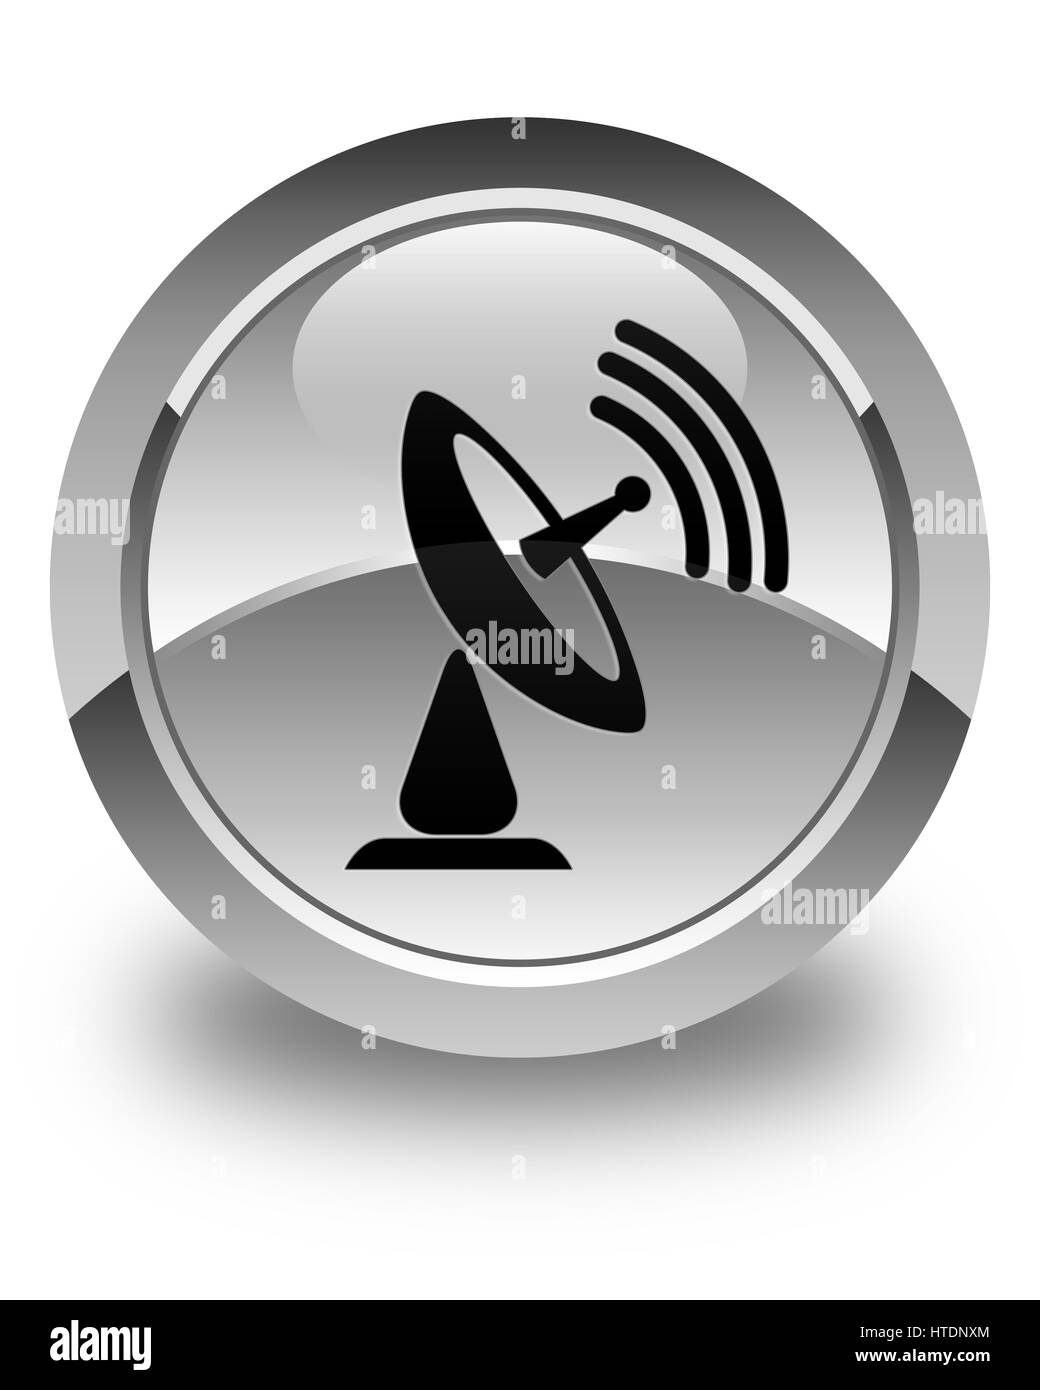 Satellite dish icon isolated on glossy white round button abstract illustration - Stock Image